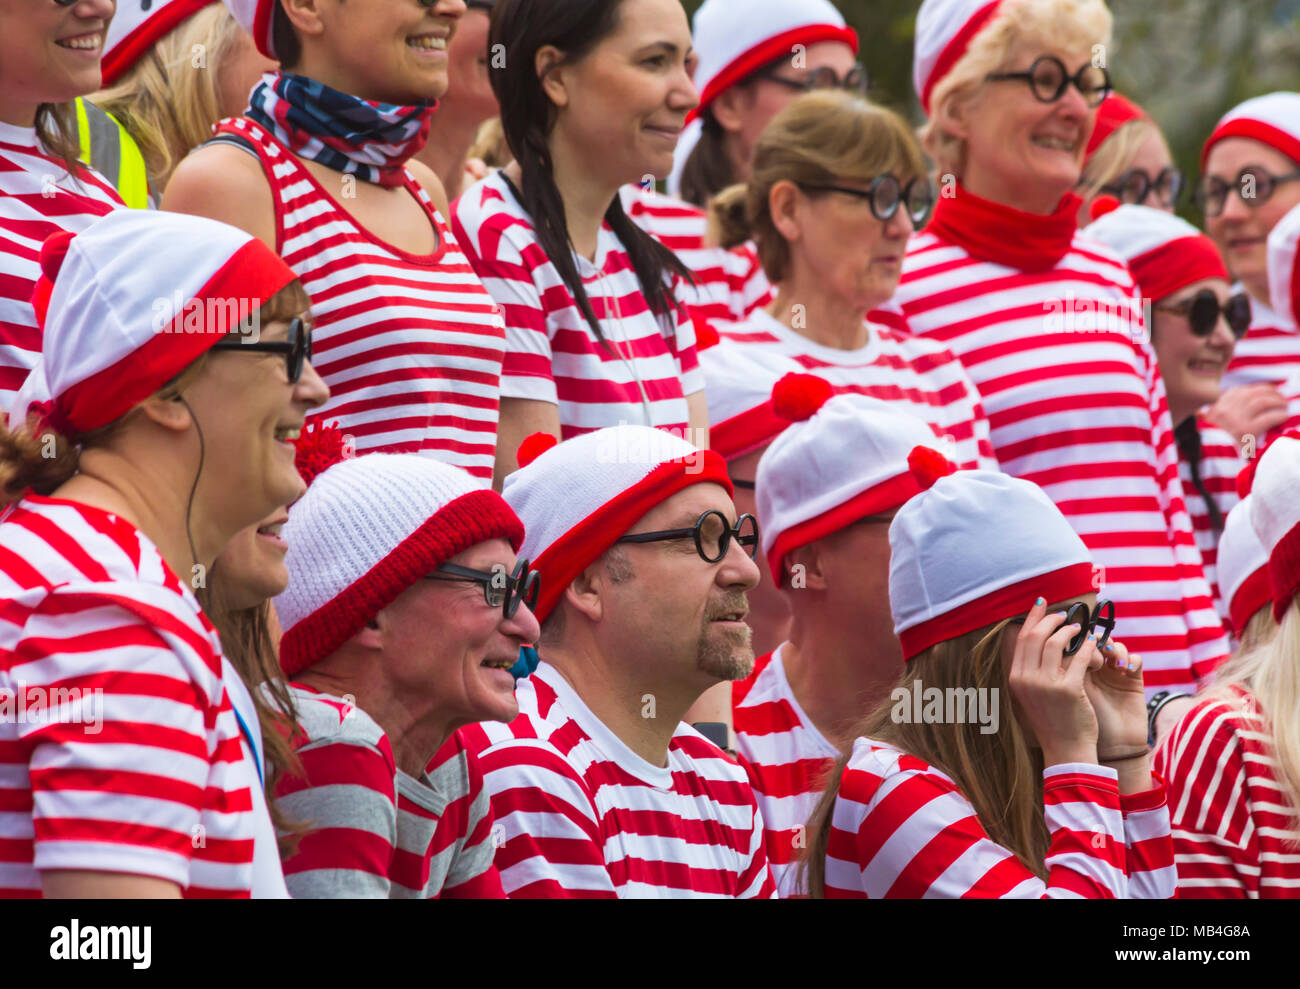 Poole, Dorset, UK. 7th April, 2018. Where's Wally Poole Park Run. Poole Park Run celebrate their 7th year anniversary with a Where's Wally themed run. The wet weather didn't deter Wally! Credit: Carolyn Jenkins/Alamy Live News - Stock Image